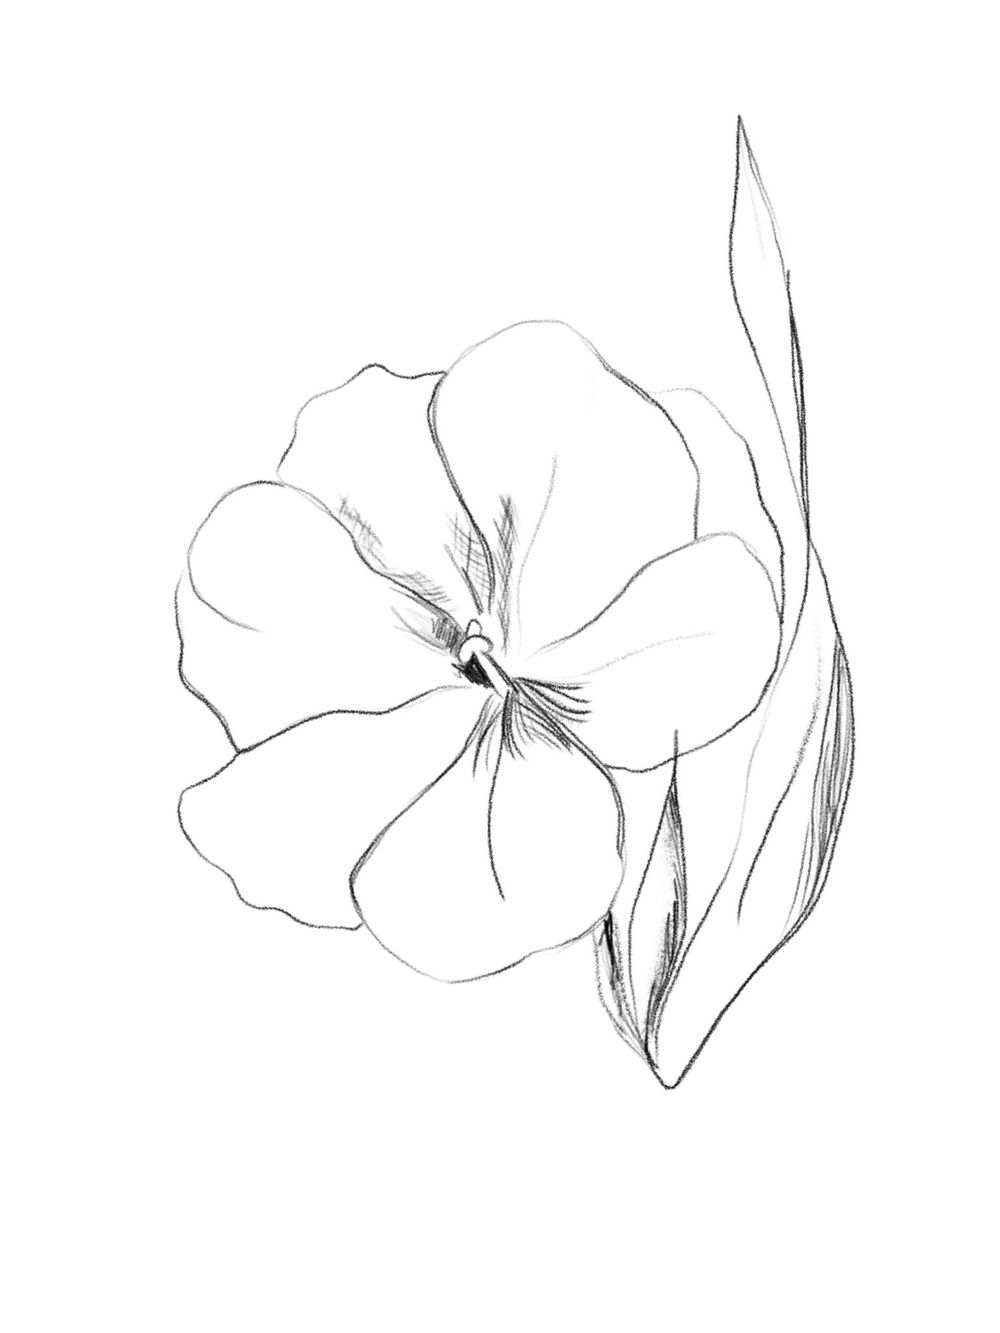 Flower Rough Sketch - image 2 - student project